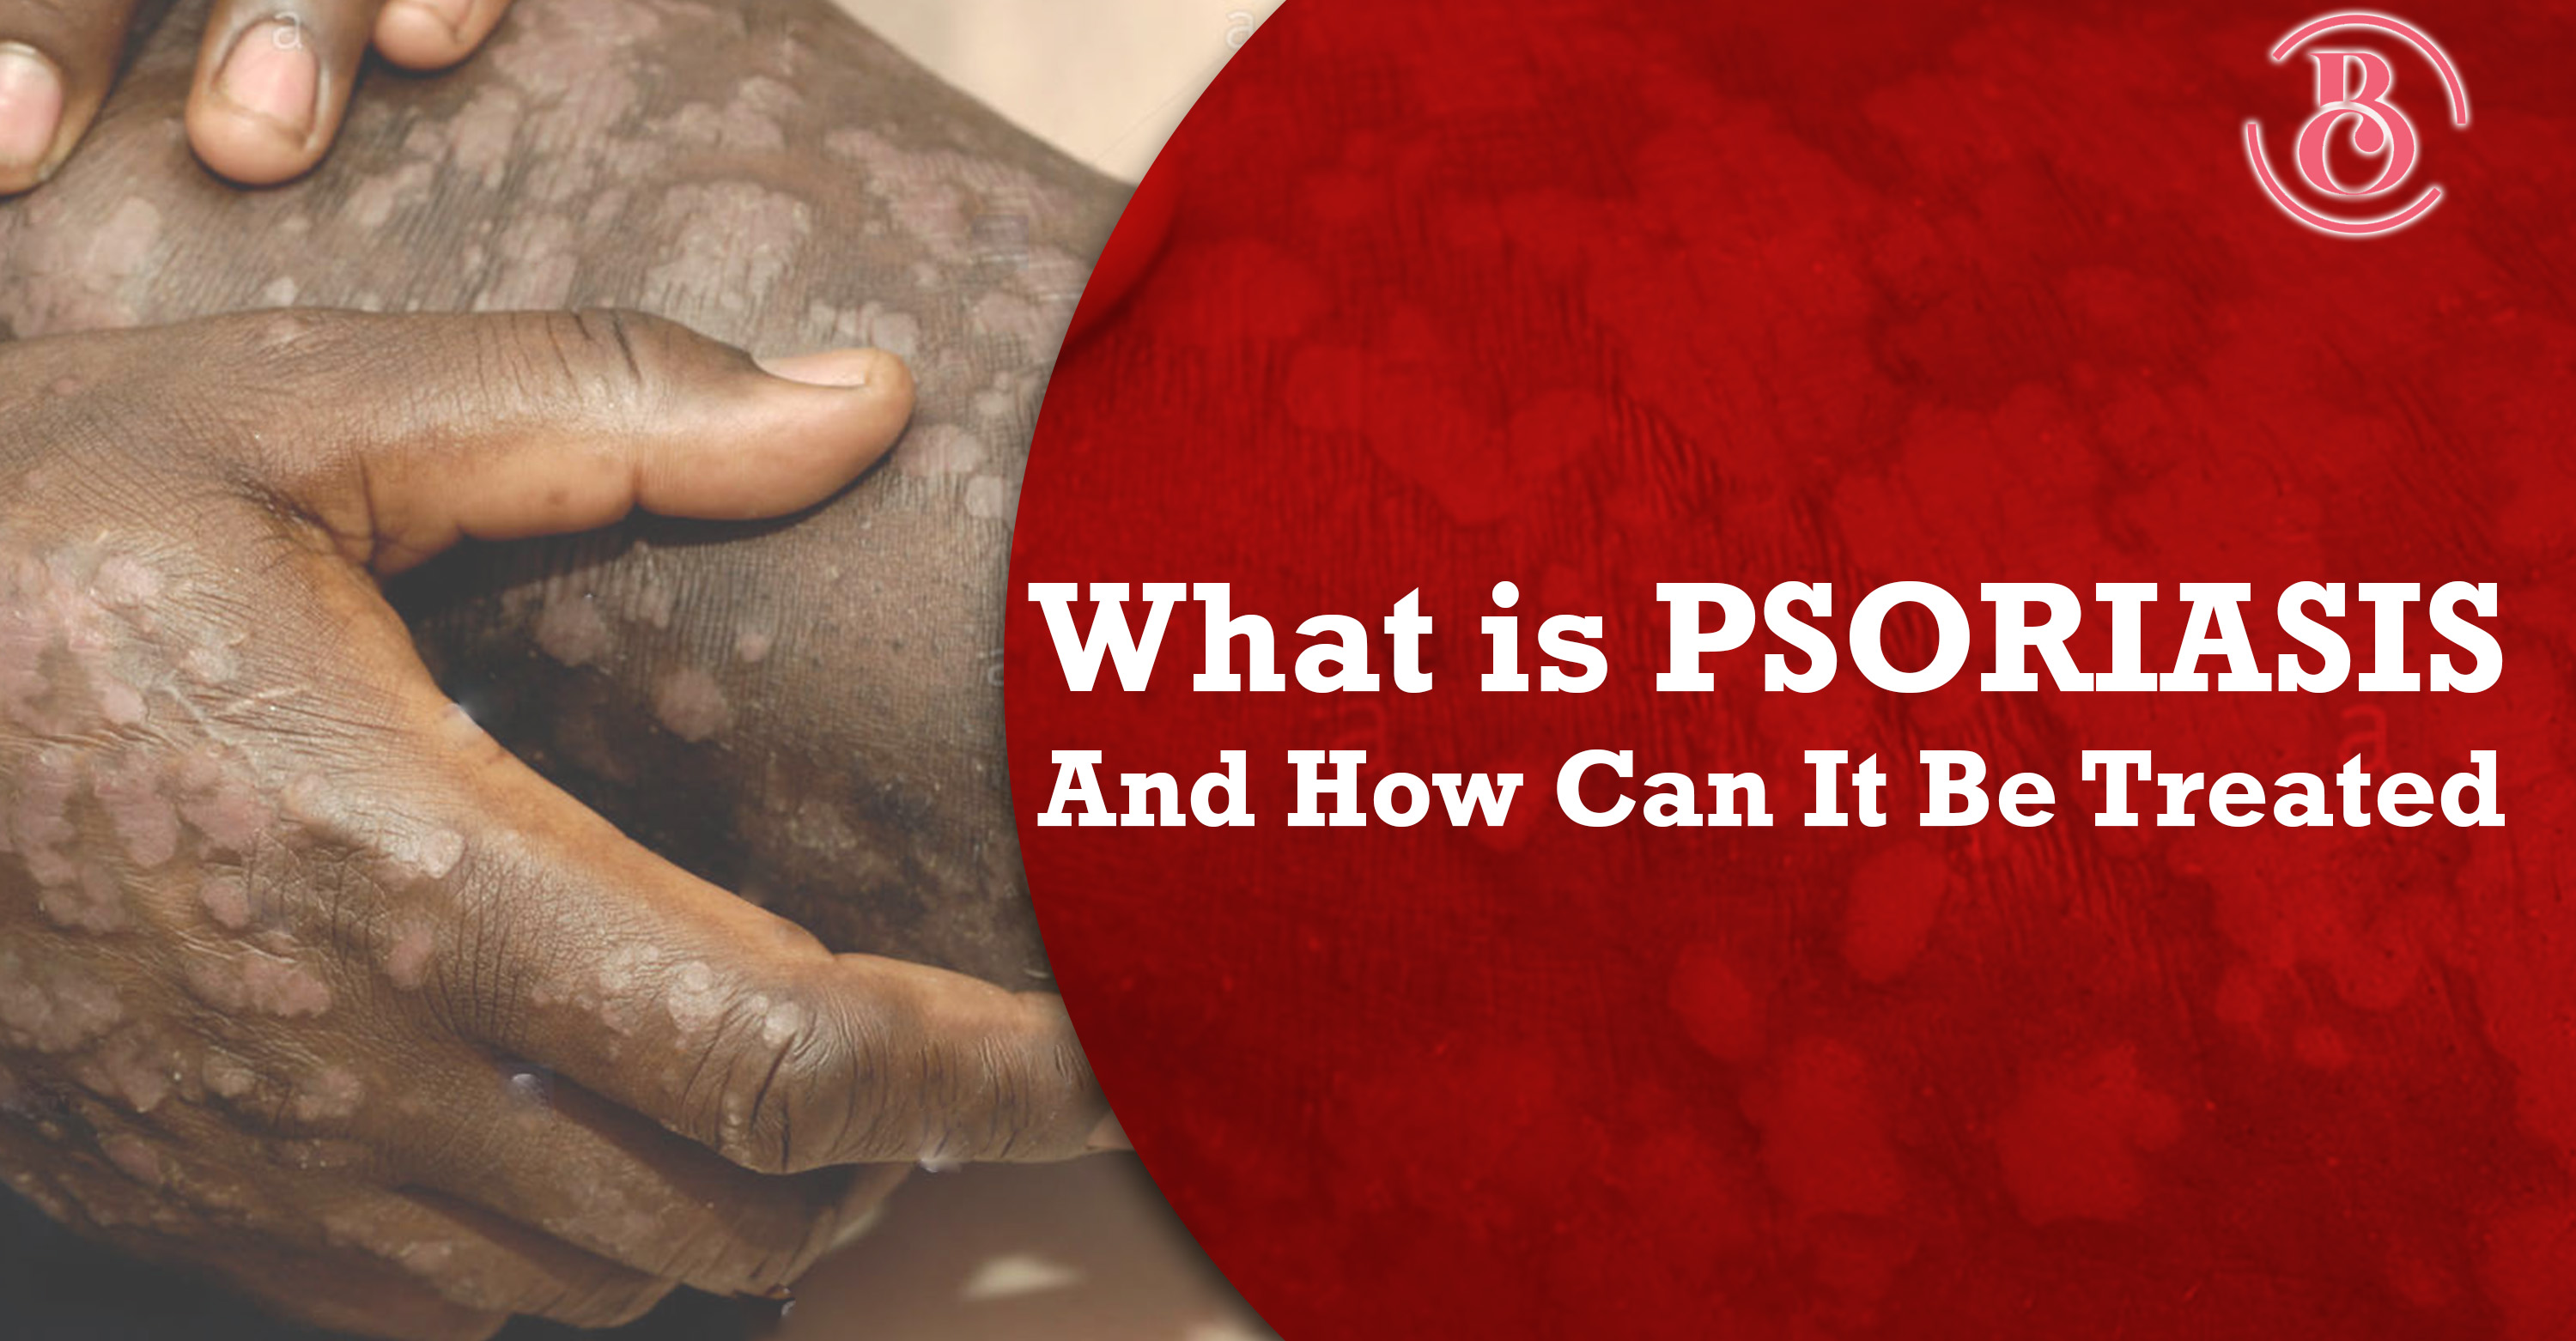 What Is Psoriasis and How Can It Be Treated?